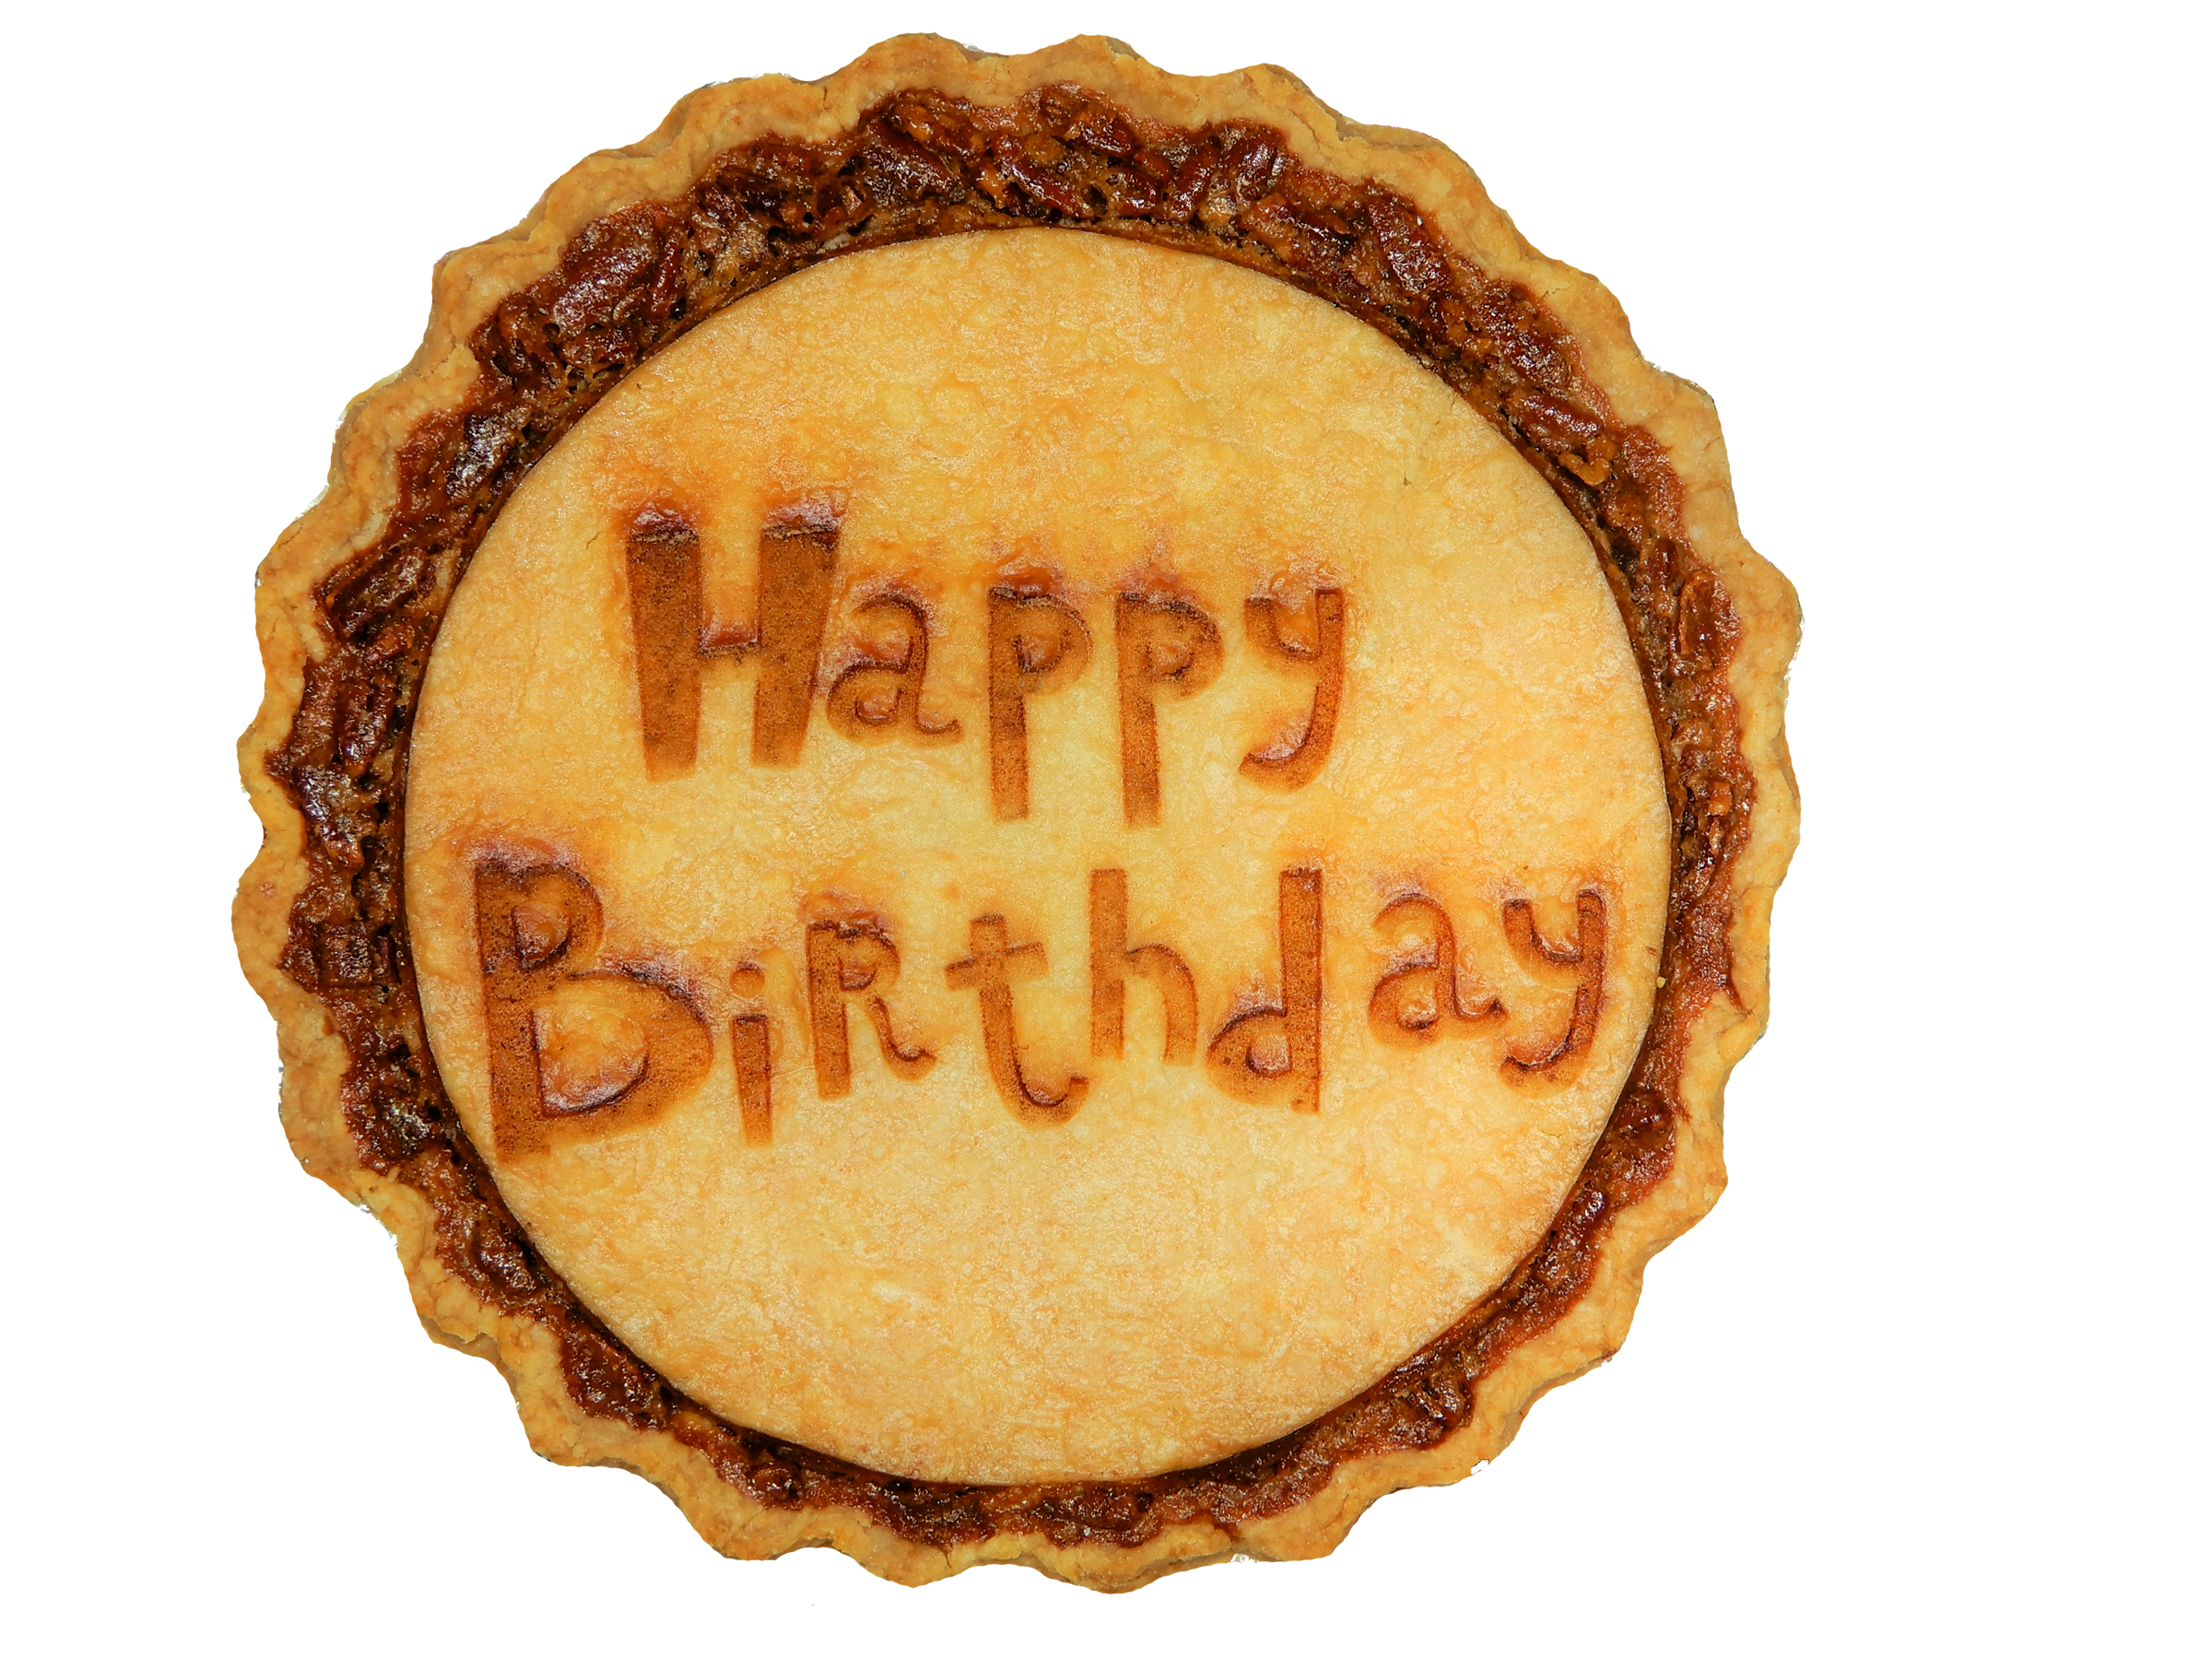 Personalized Birthday Gift Pie